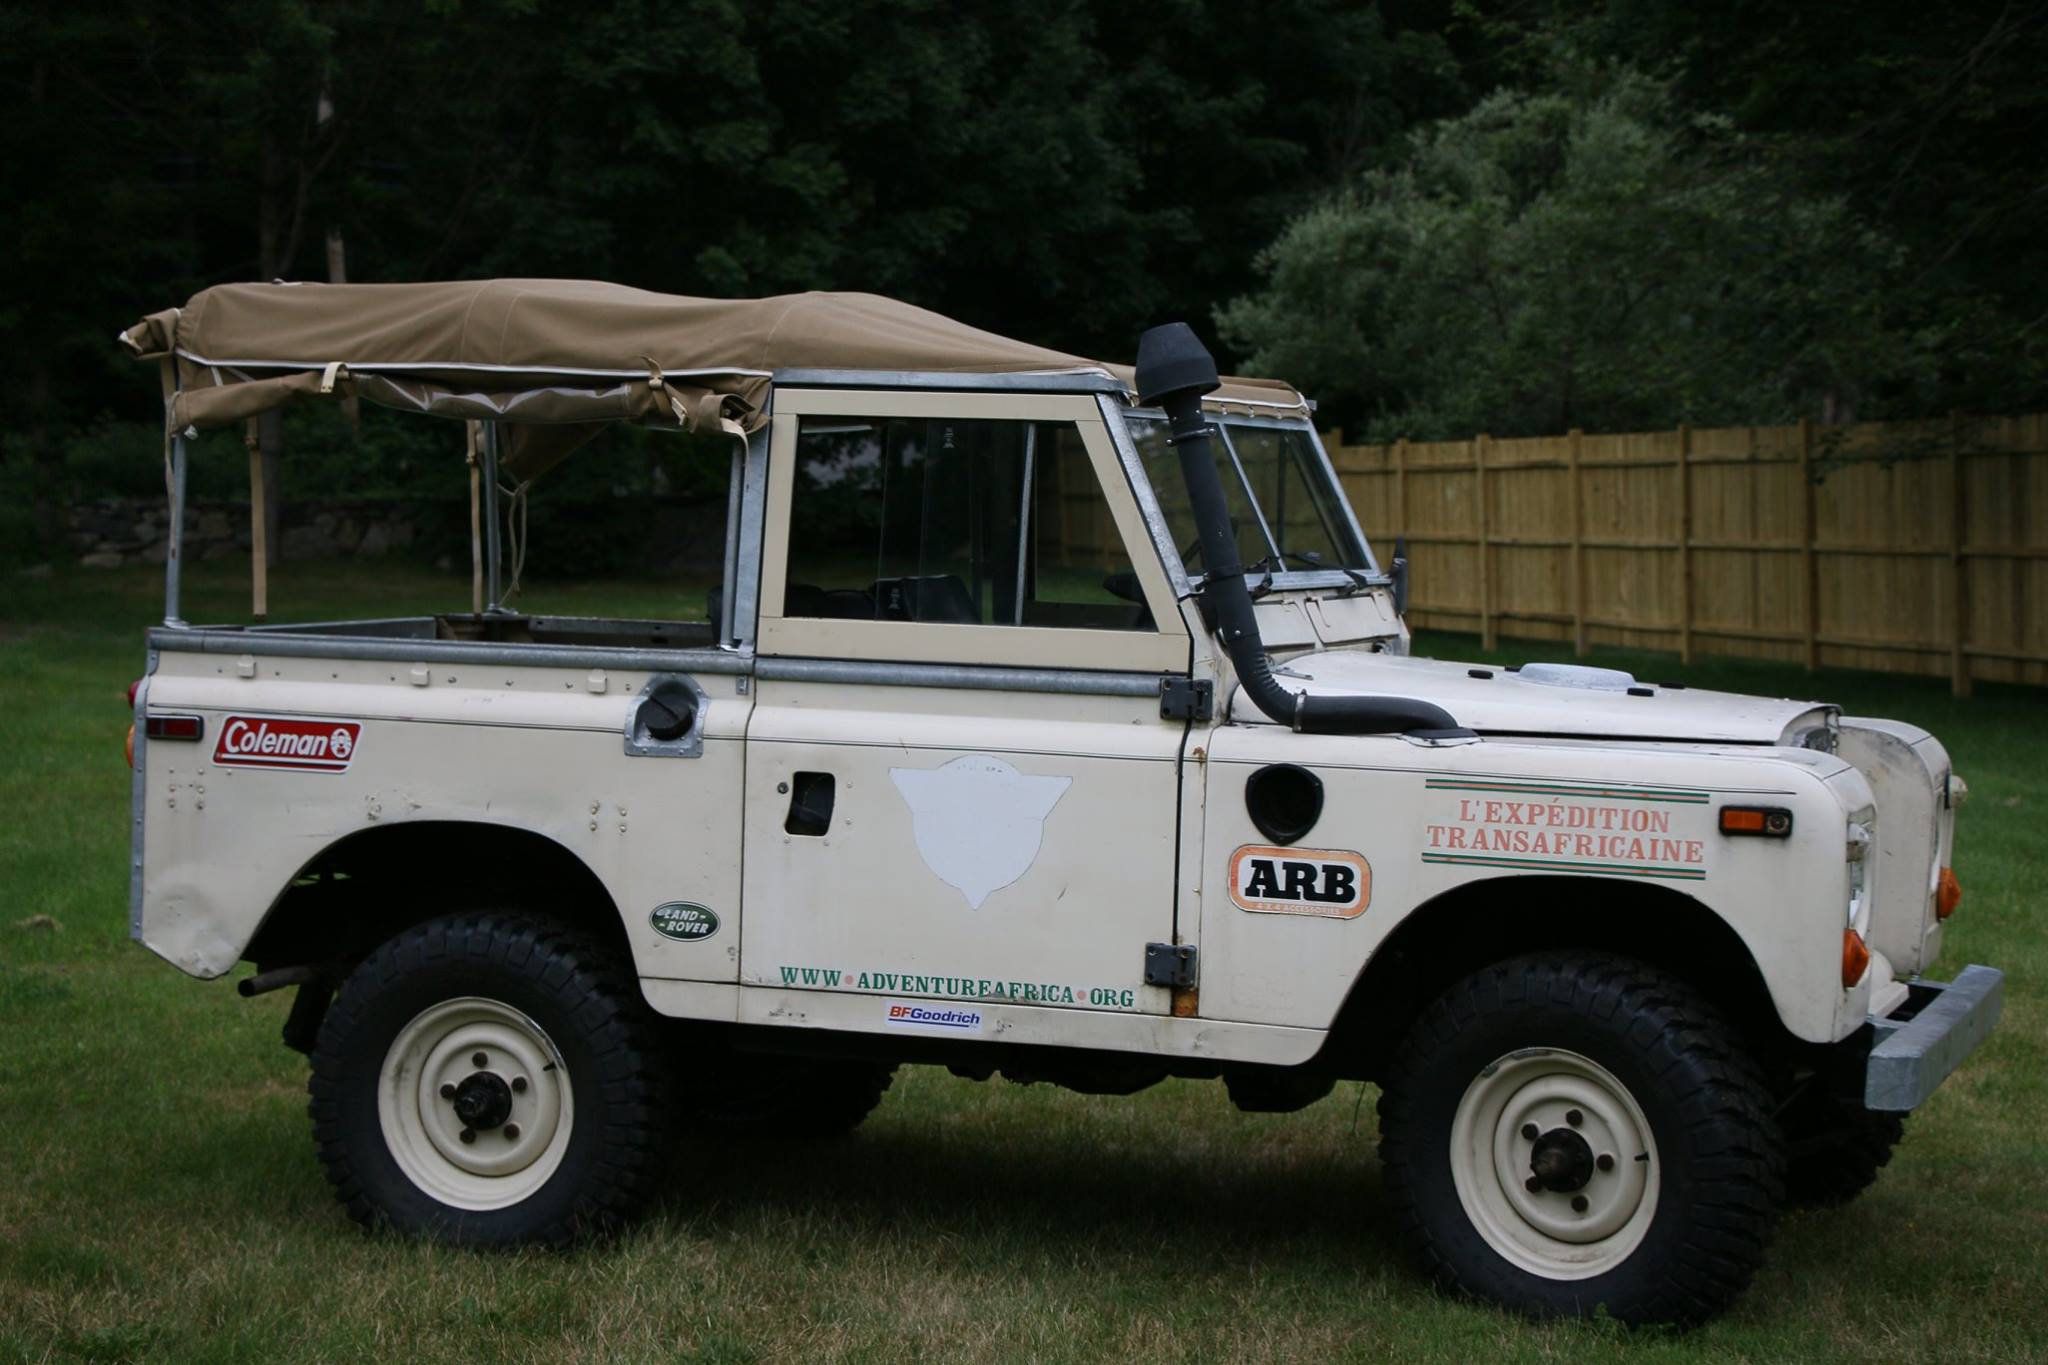 1973 Land Rover Series III L'Expedition Transafricaine